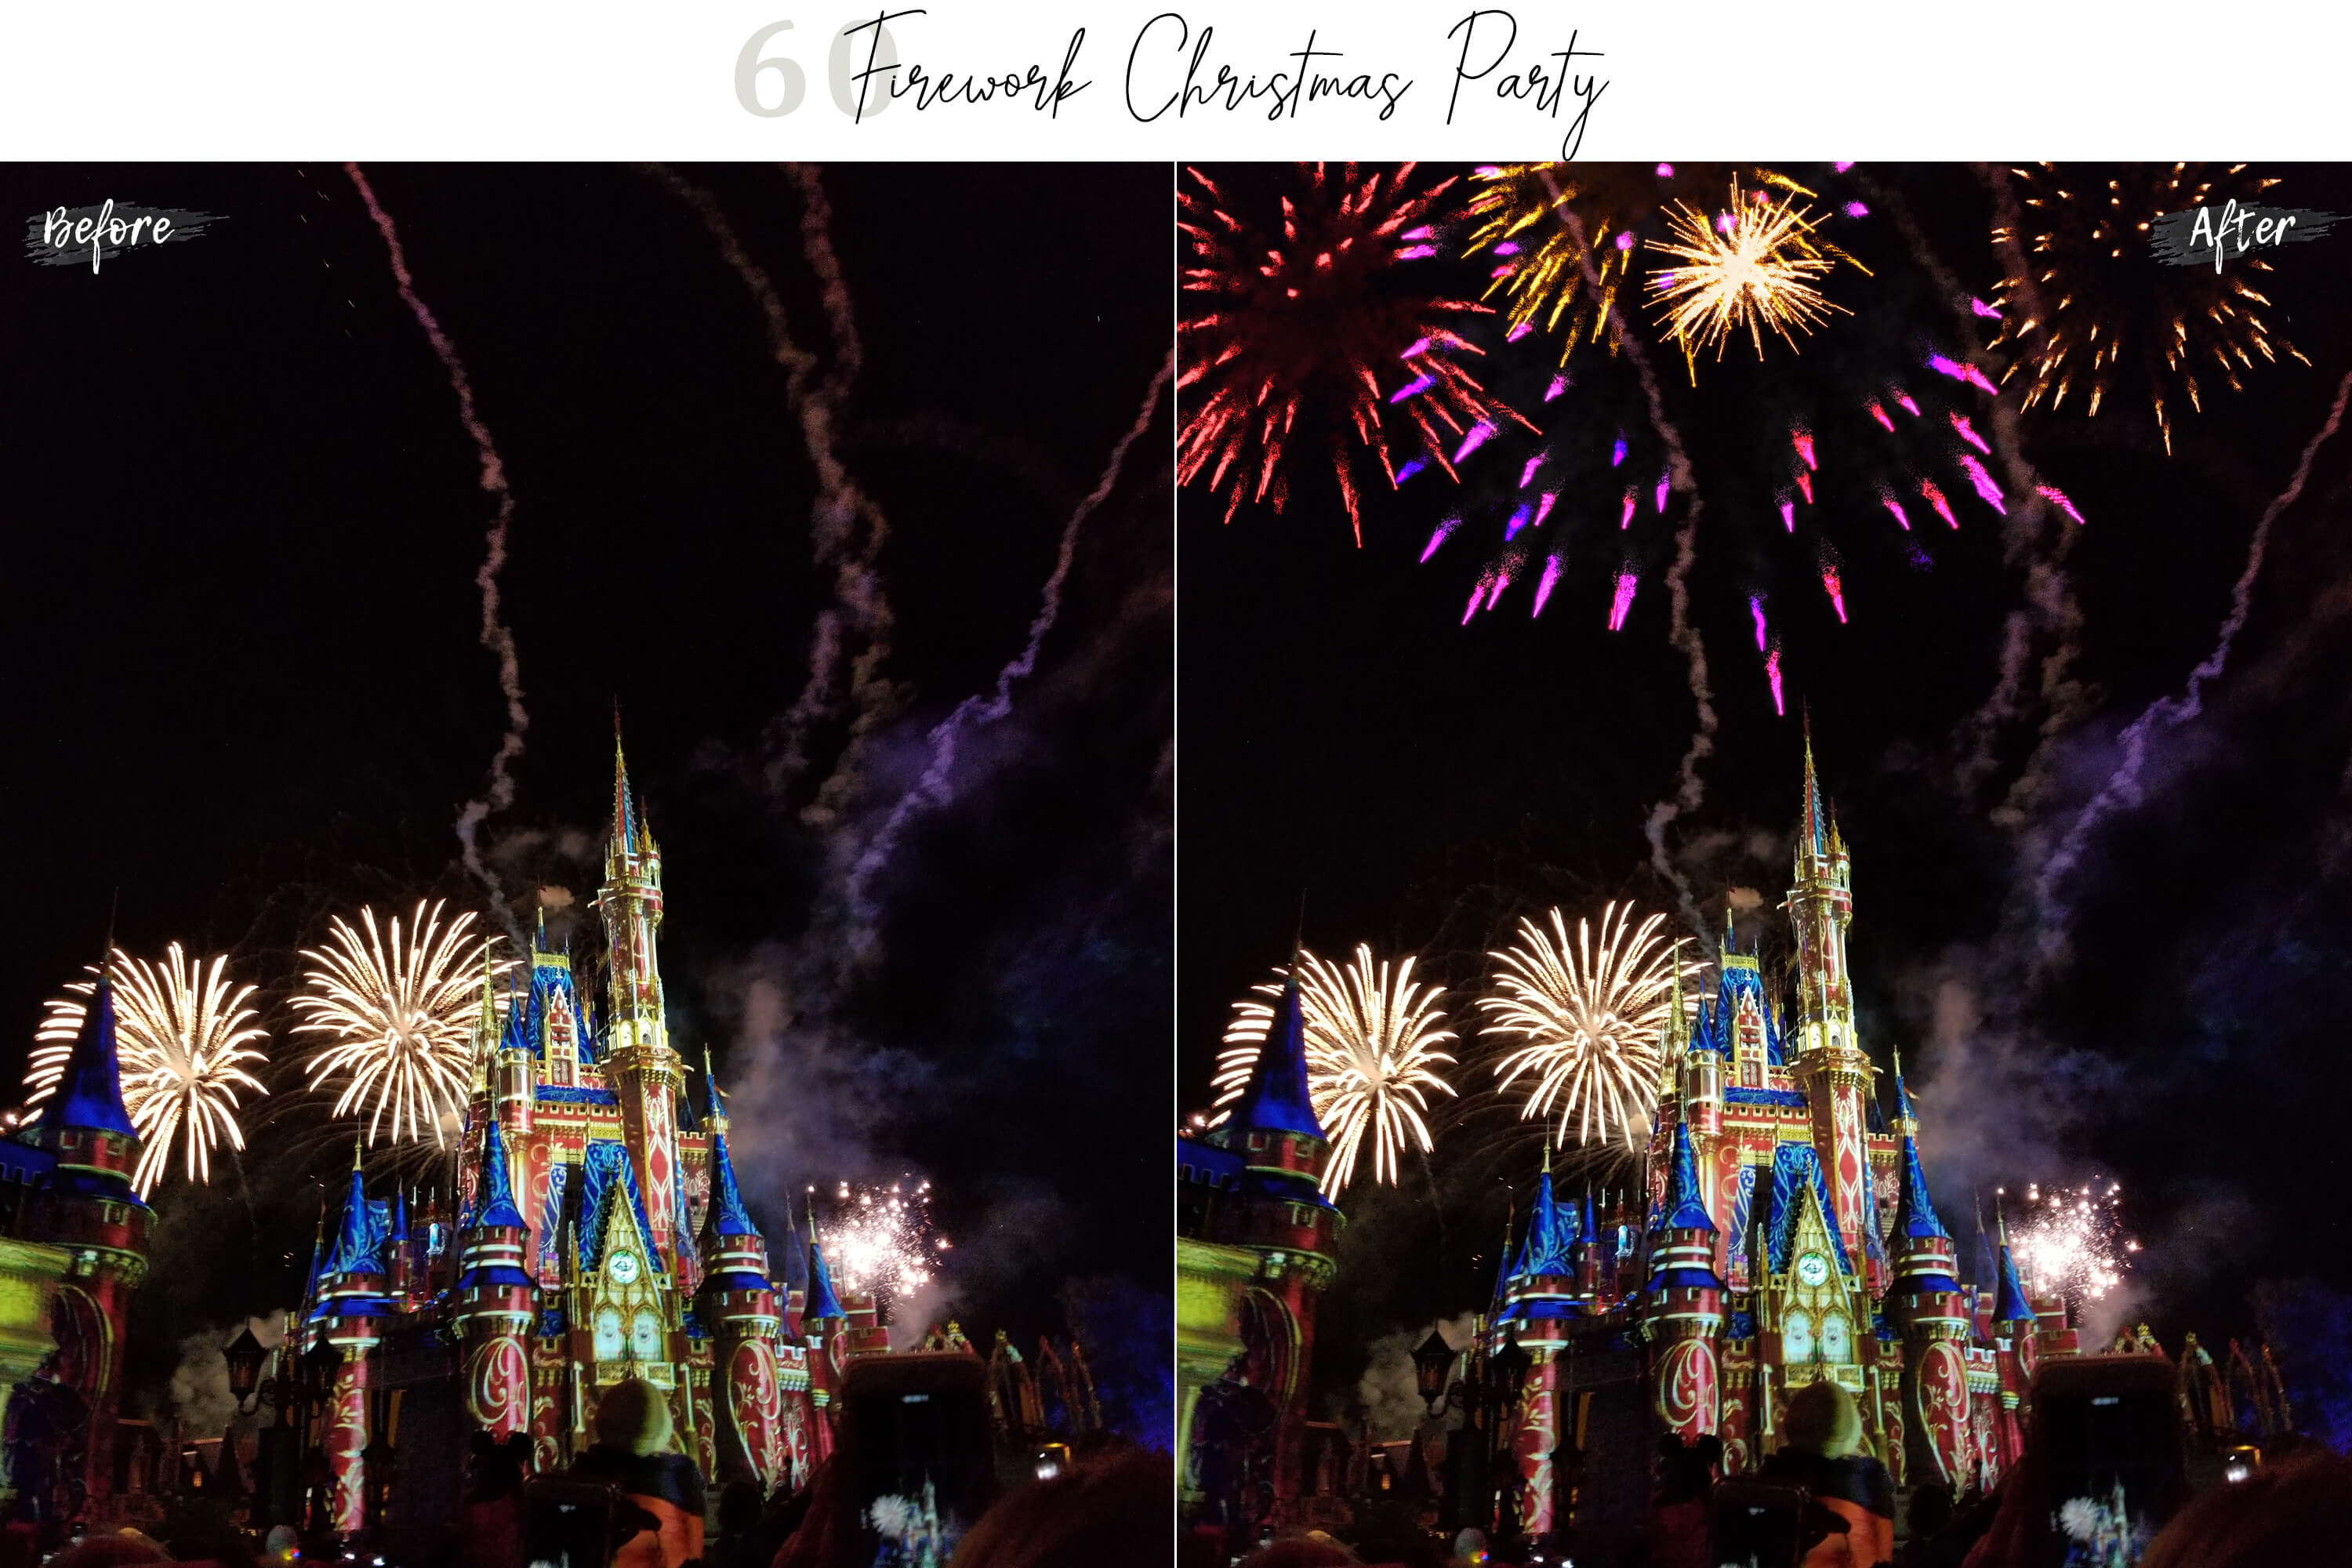 60 Firework Christmas Party Overlays example image 5